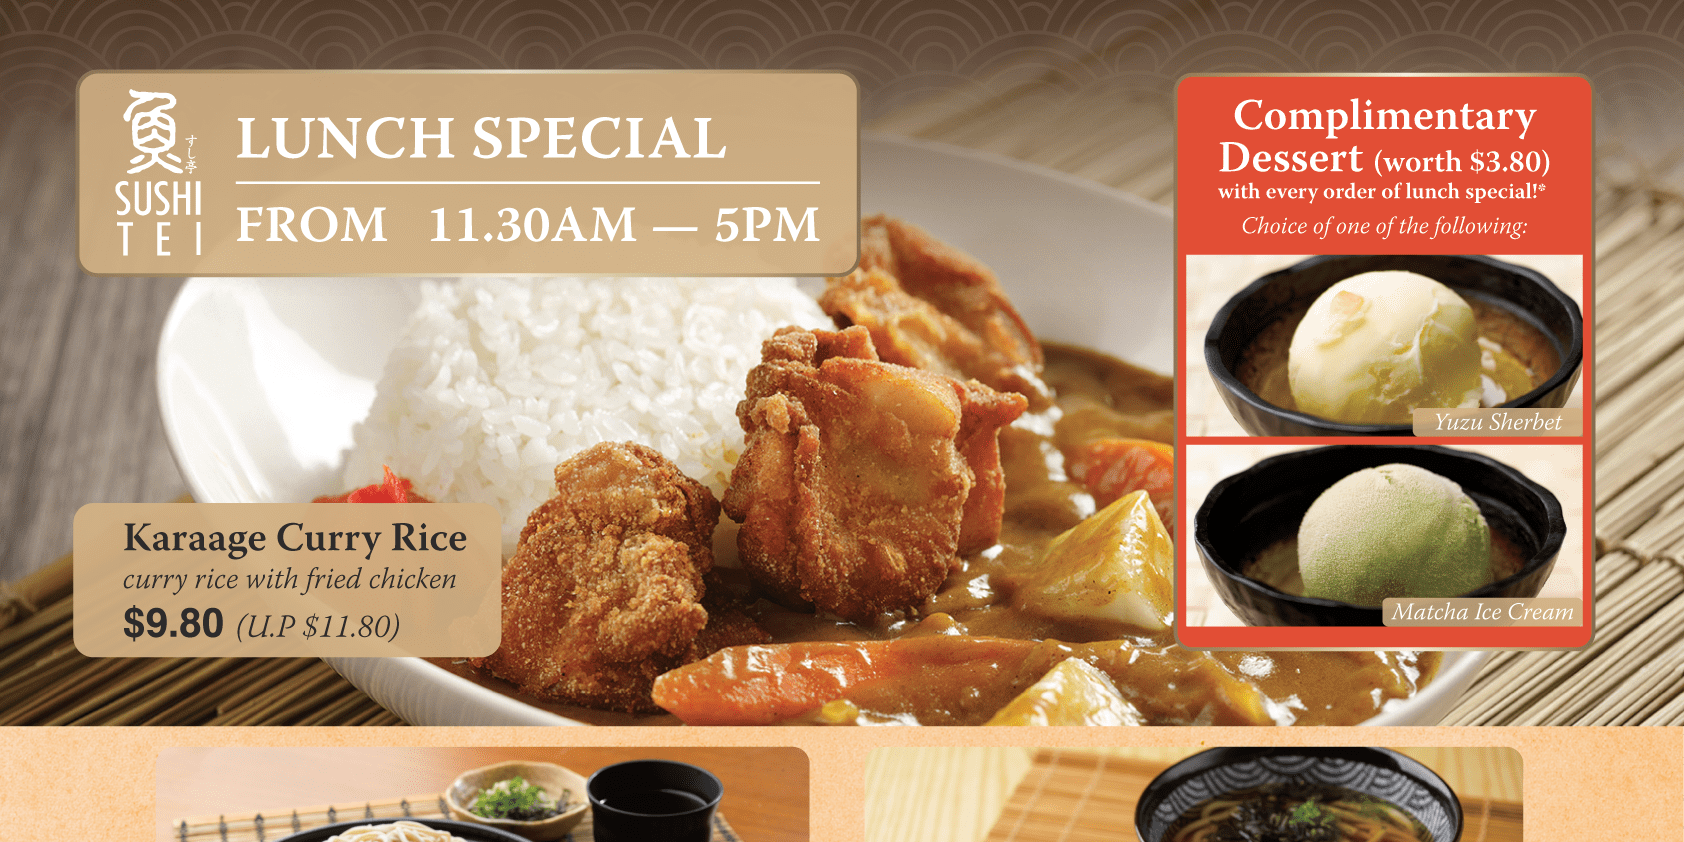 Sushi Tei lunch menu special with complimentary dessert at Changi Jewel's Outlet!